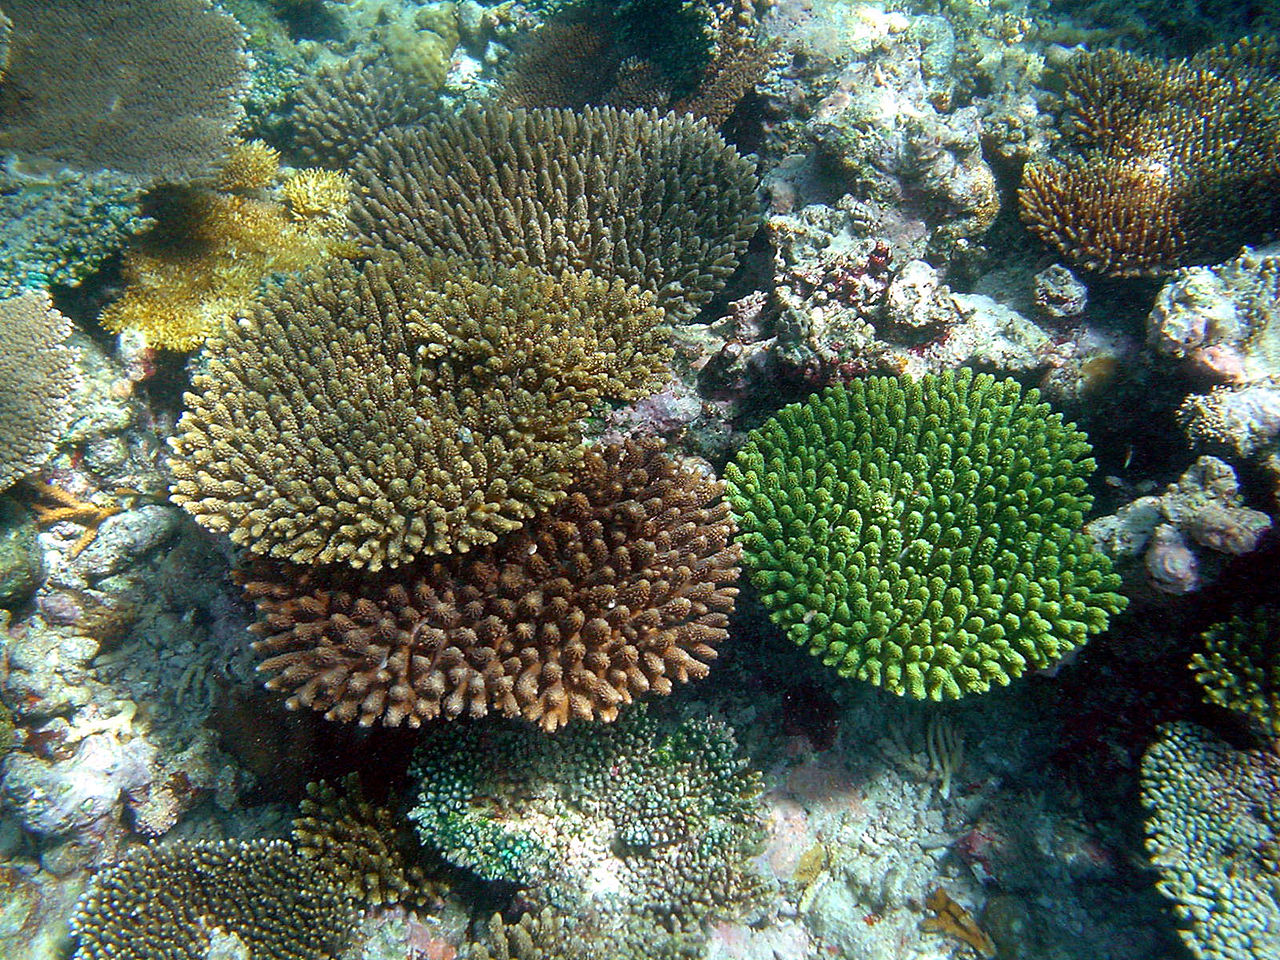 Corals from the Maldivian island of Madoogali in Maldives